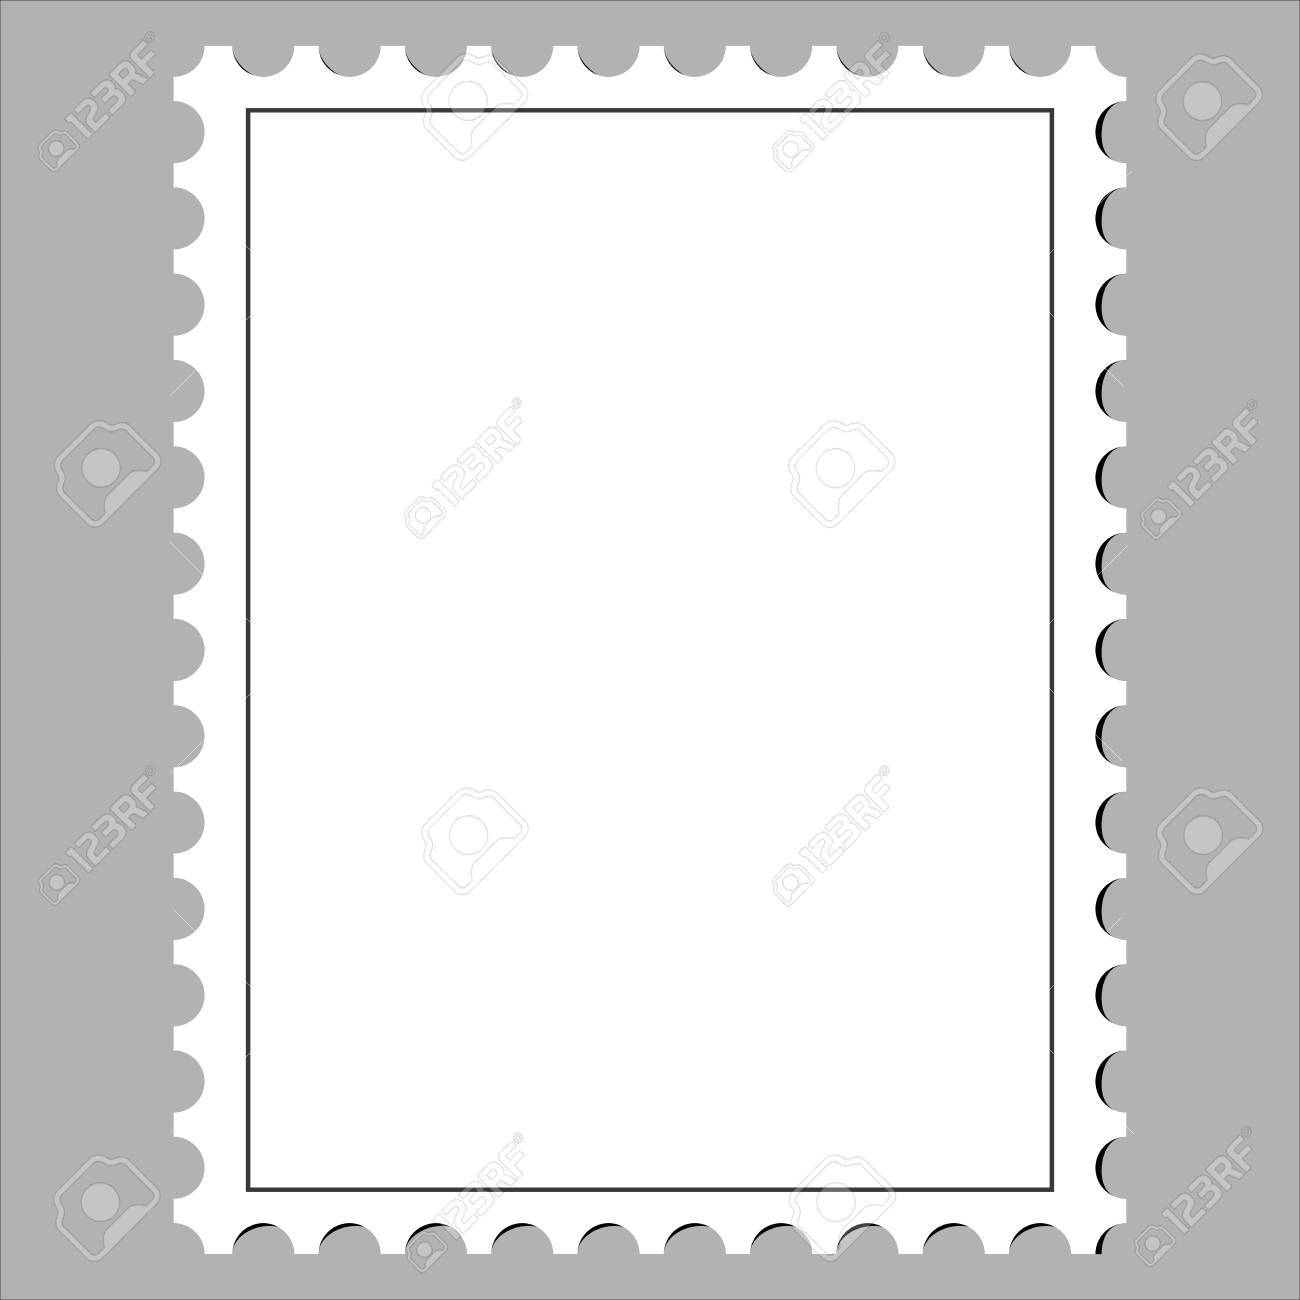 Clean Postage Stamp, Template, Icon On White Background Vector Illustration  Stock Vector   74712467